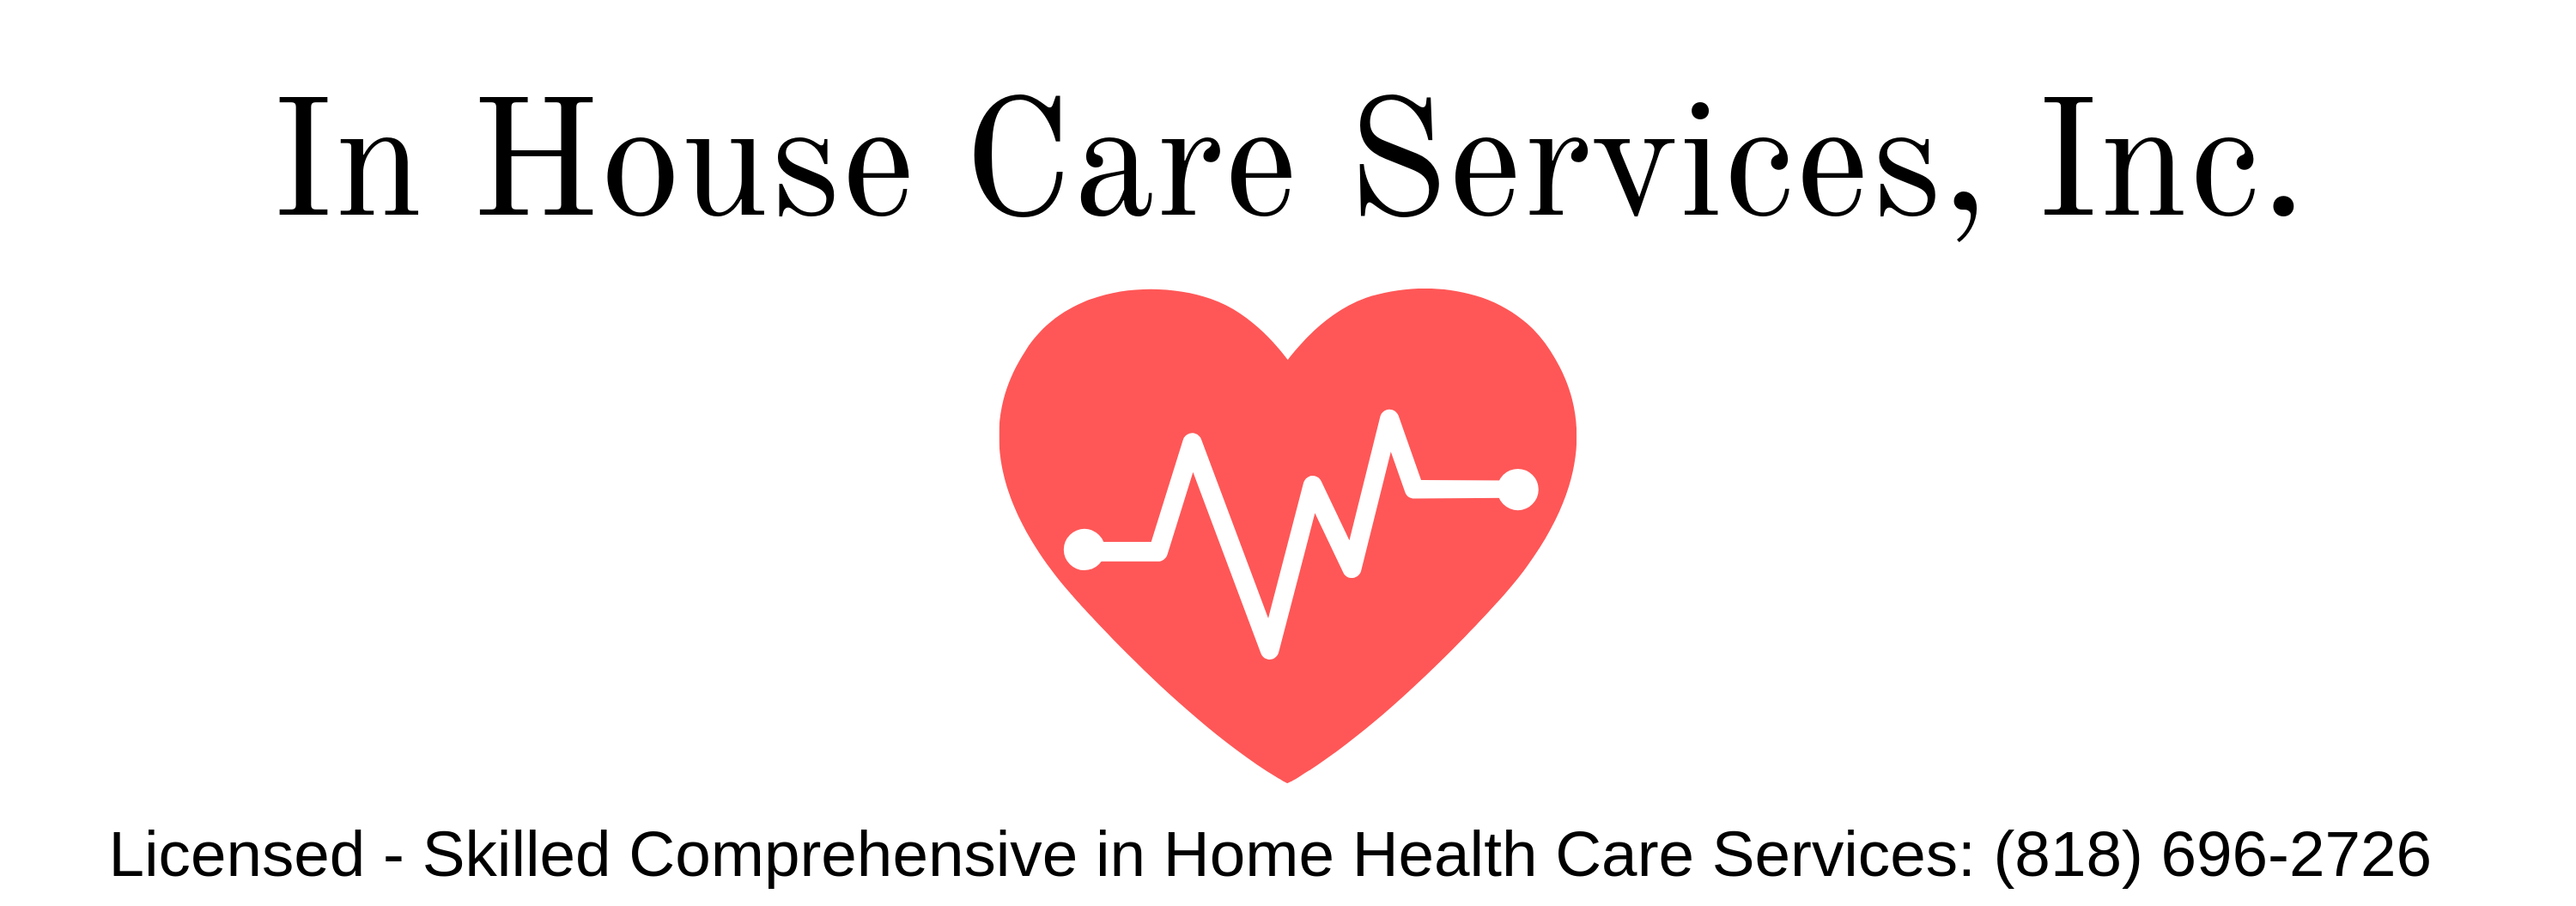 In Home Health Care Agencies Services Los Angeles, Sherman Oaks, Burbank, Pasadena, Woodland Hills, Tarzana, Glendale, San Fernando Valley Elderly Care, Physical Therapy, Speech Therapy, Occupational Therapy, Dementia Care, Invalid Care, Skilled Nursing Care, Medical Approved In Home Care, Medicare Approved Nursing Facilities